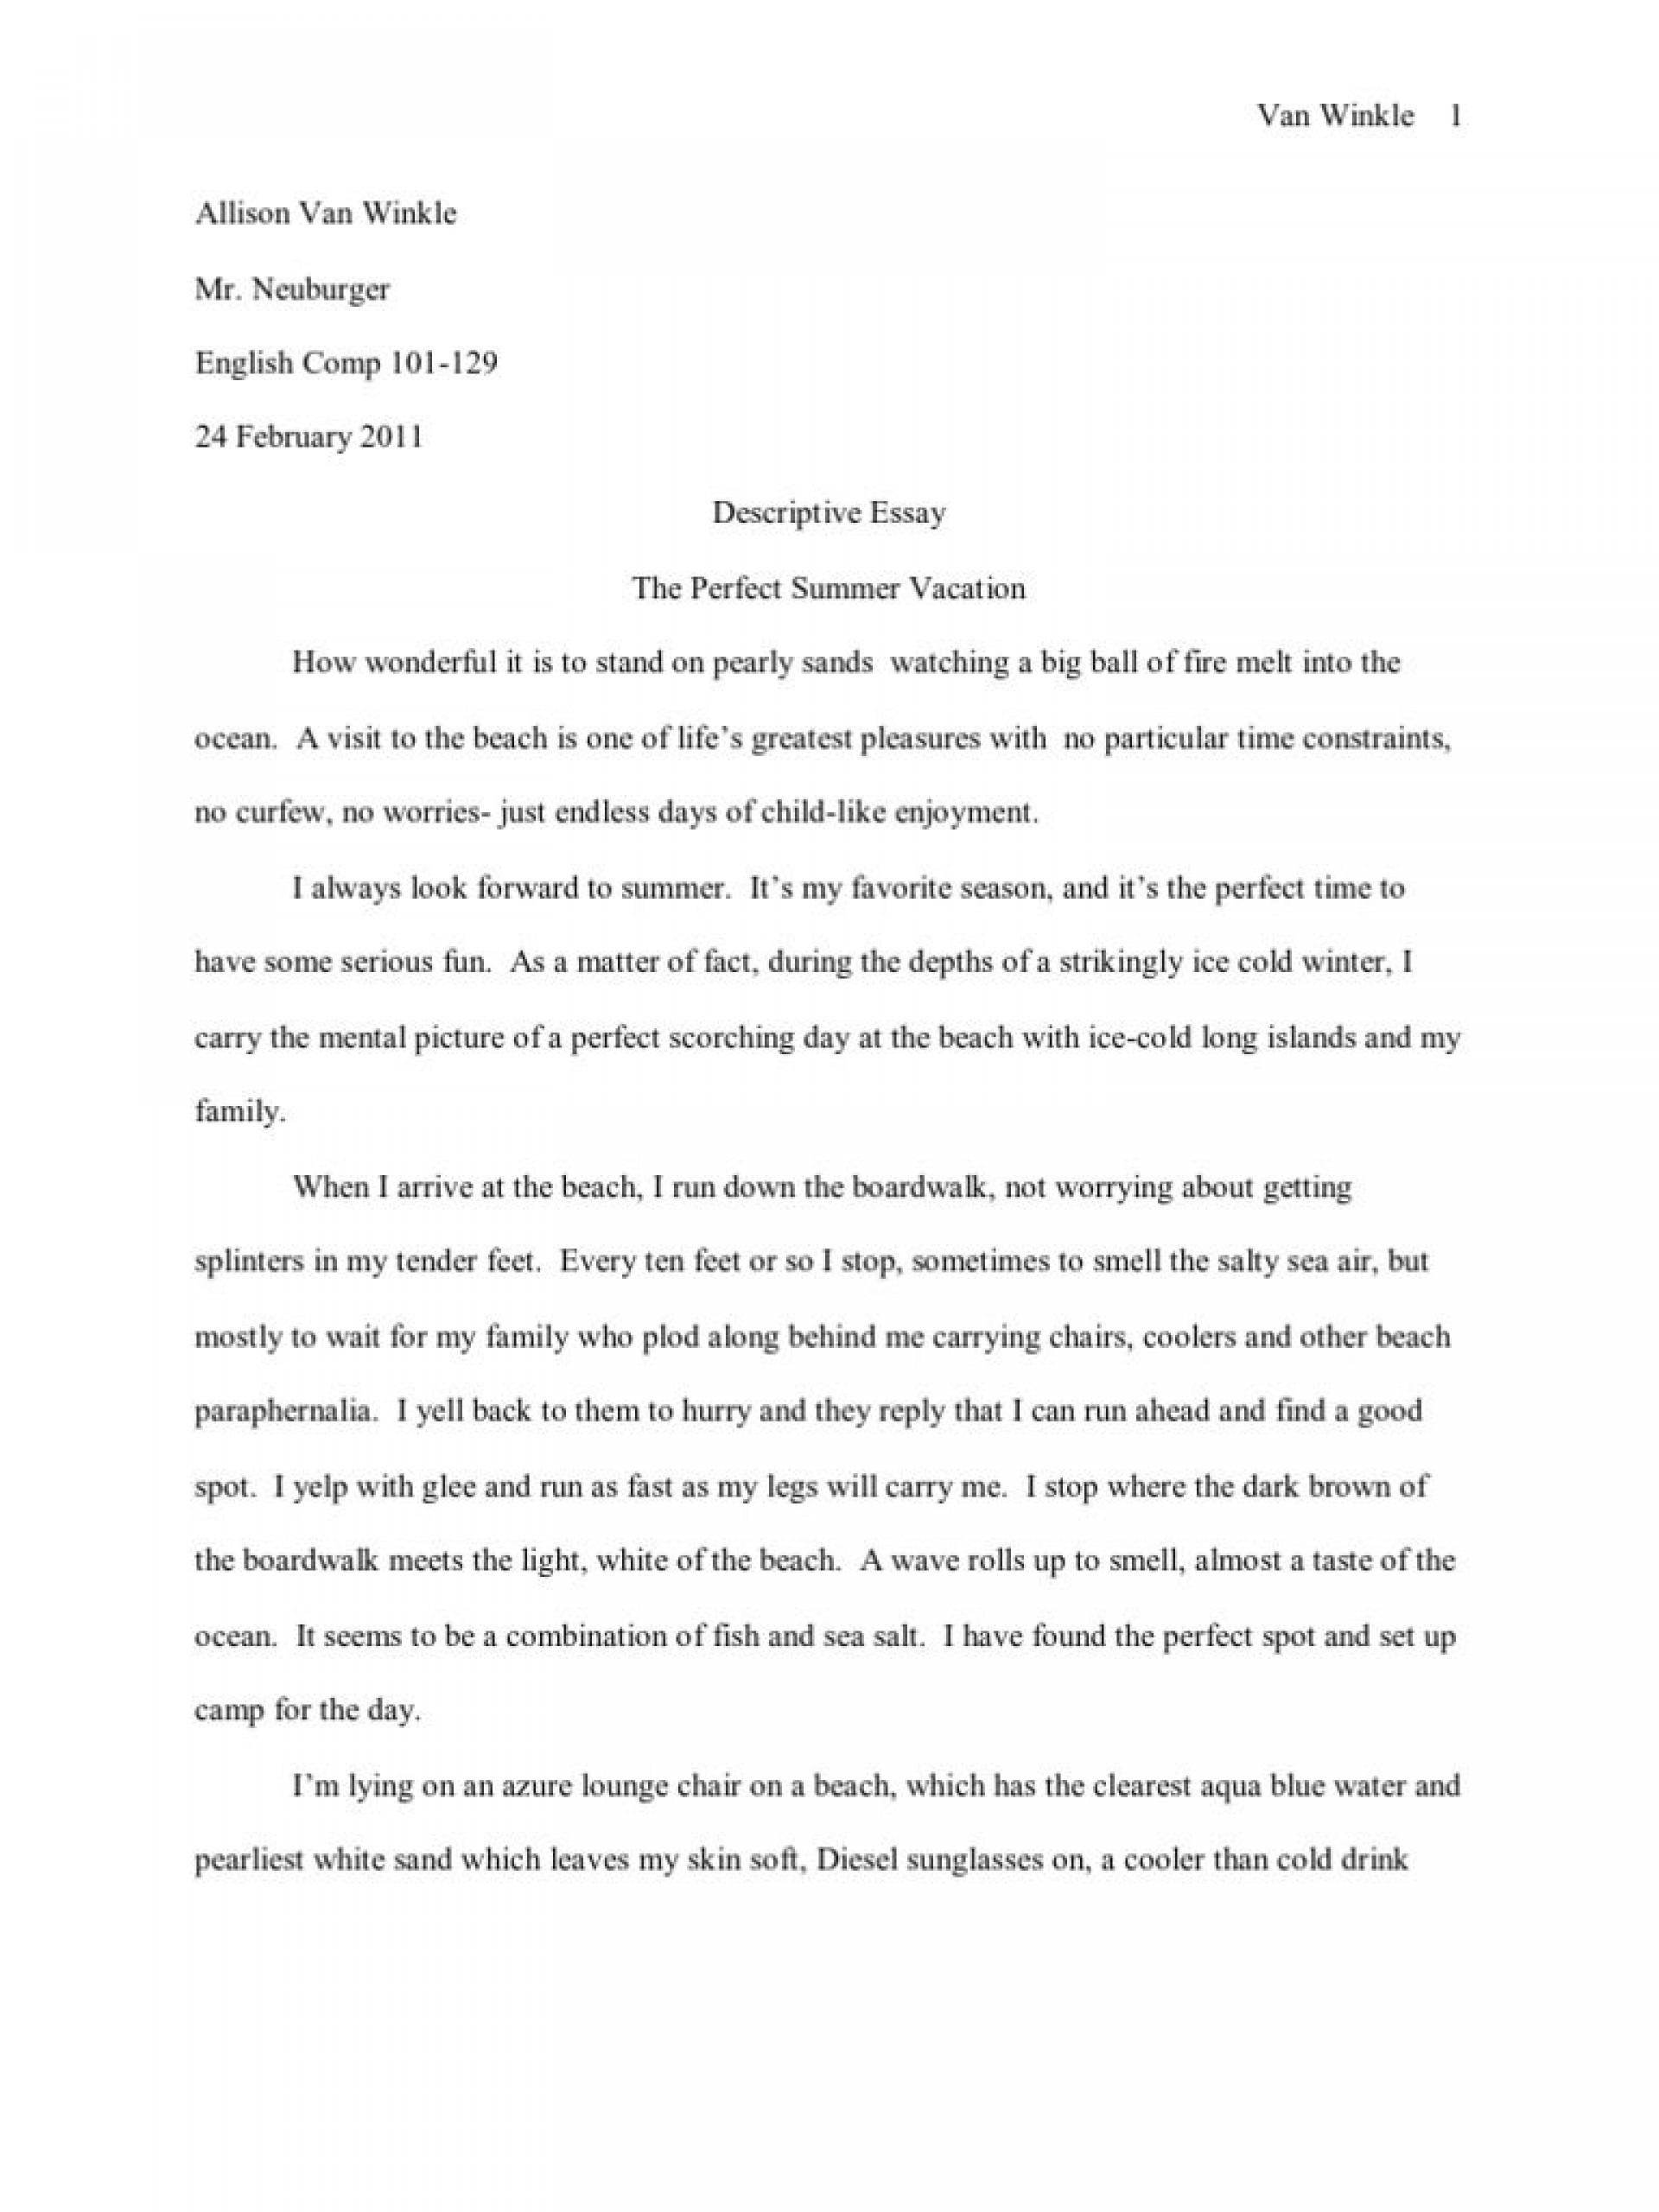 011 Descriptive Essay About The Beach Impressive At Night Writing In Summer 1920